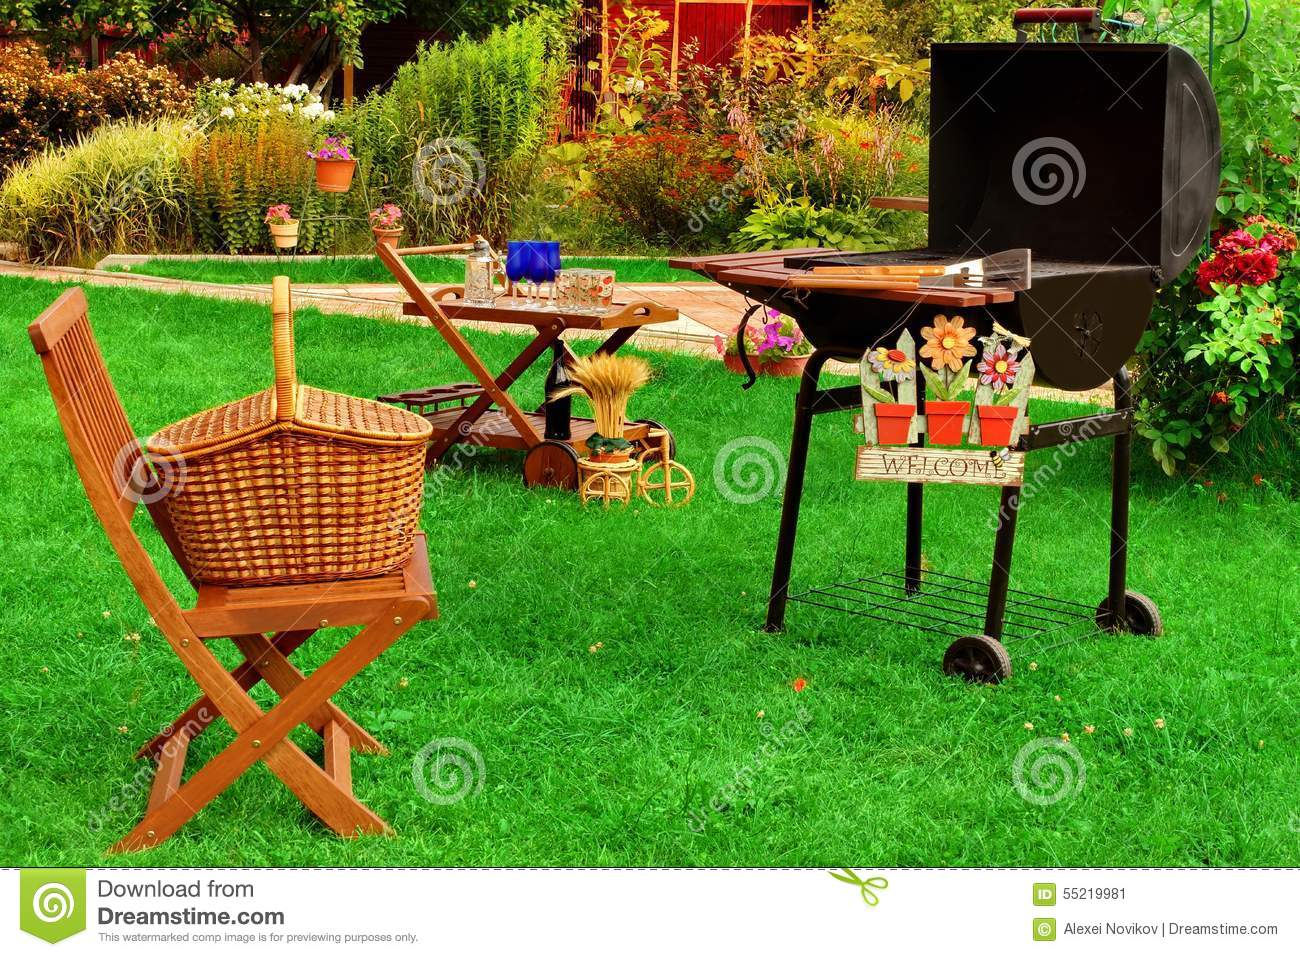 Backyard Summer Background : Summer Backyard BBQ Grill Party Or Picnic Scene Stock Photo  Image